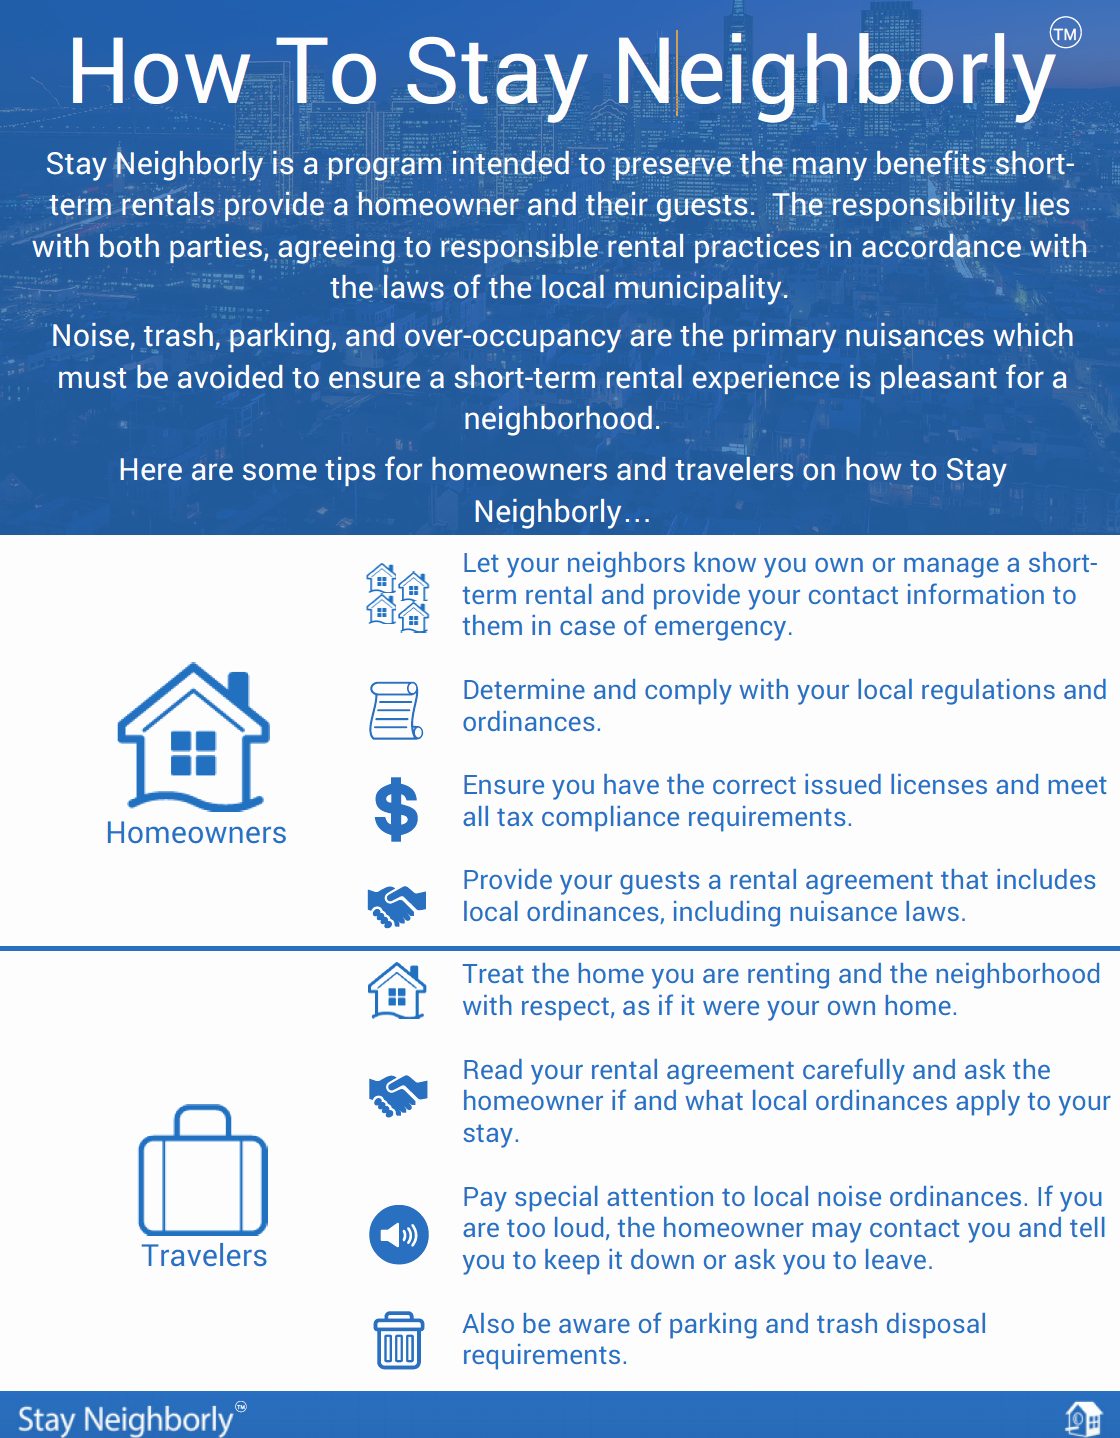 Rent House Rules Awesome Garbage Rules for Tenants S and Description About